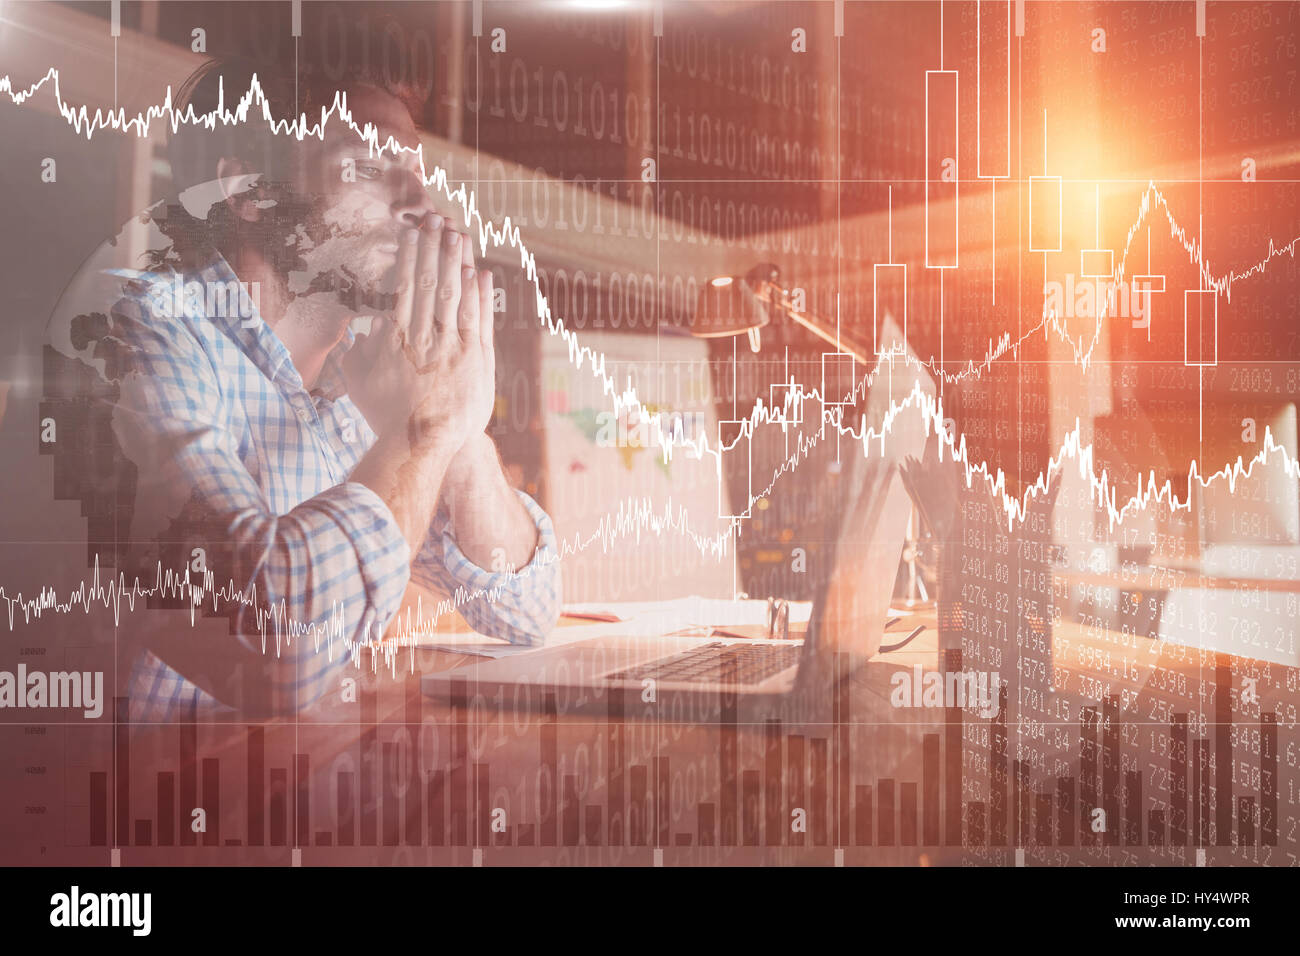 Stocks and shares against overworked businessman working at night - Stock Image